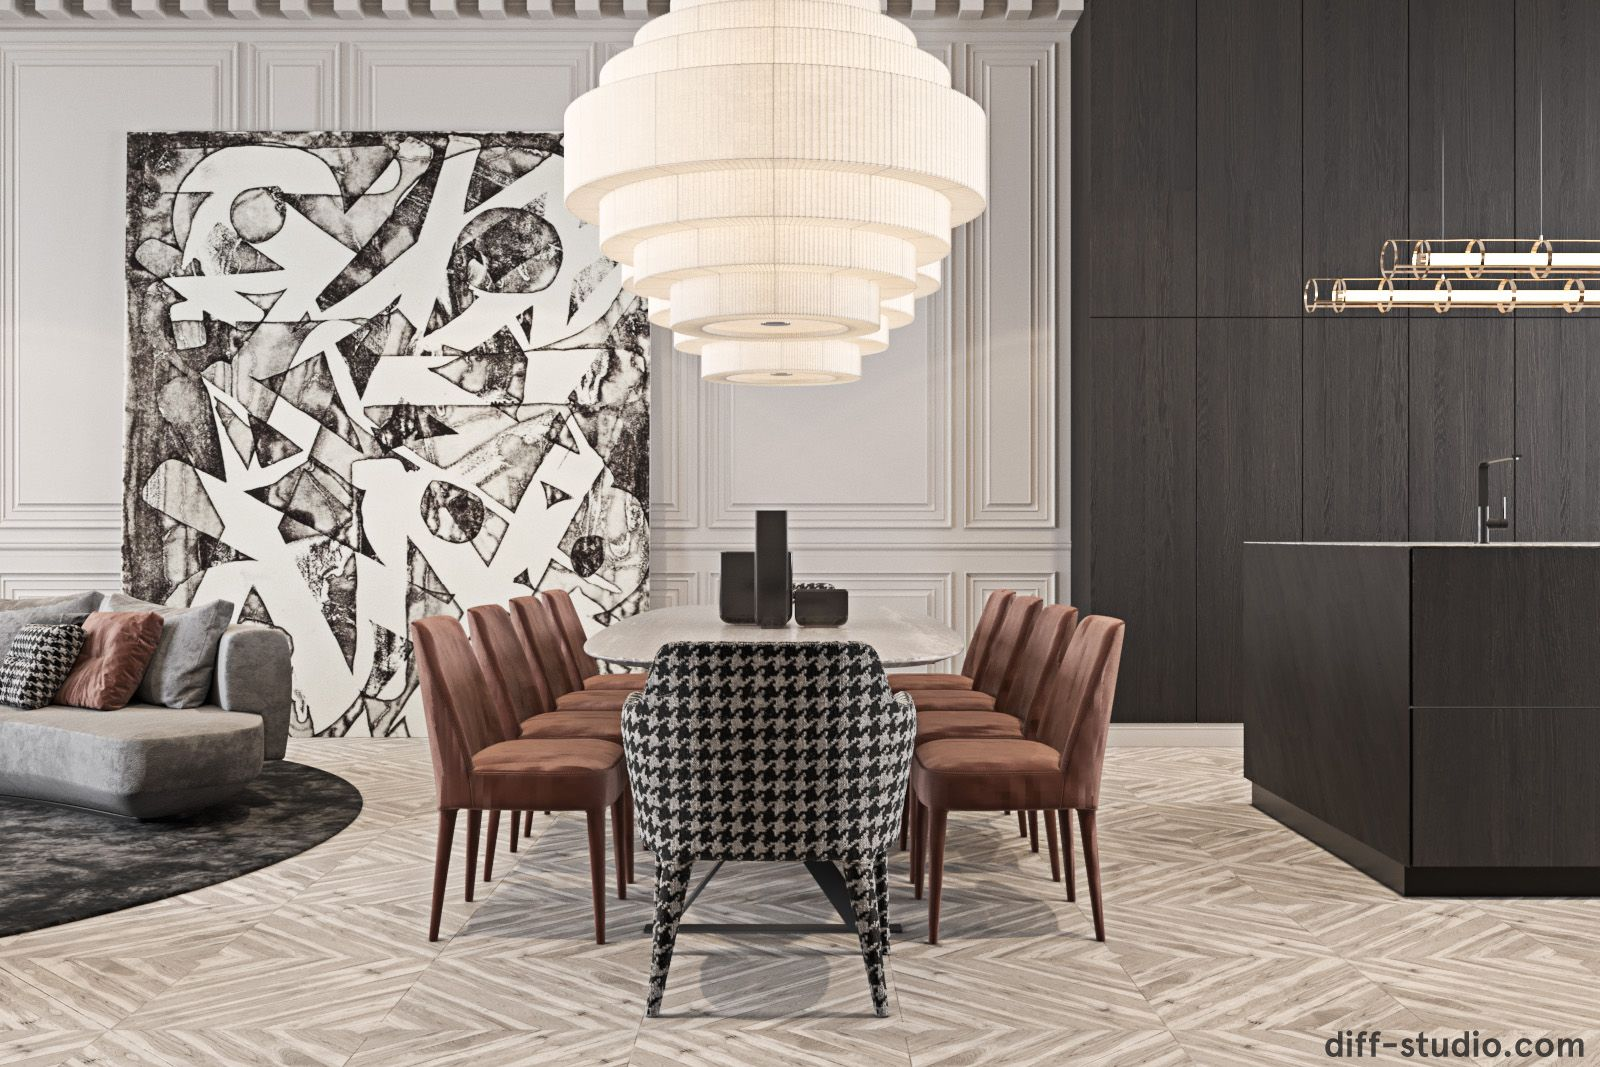 Diff.Studio › Palace in France with bold accents Дизайн